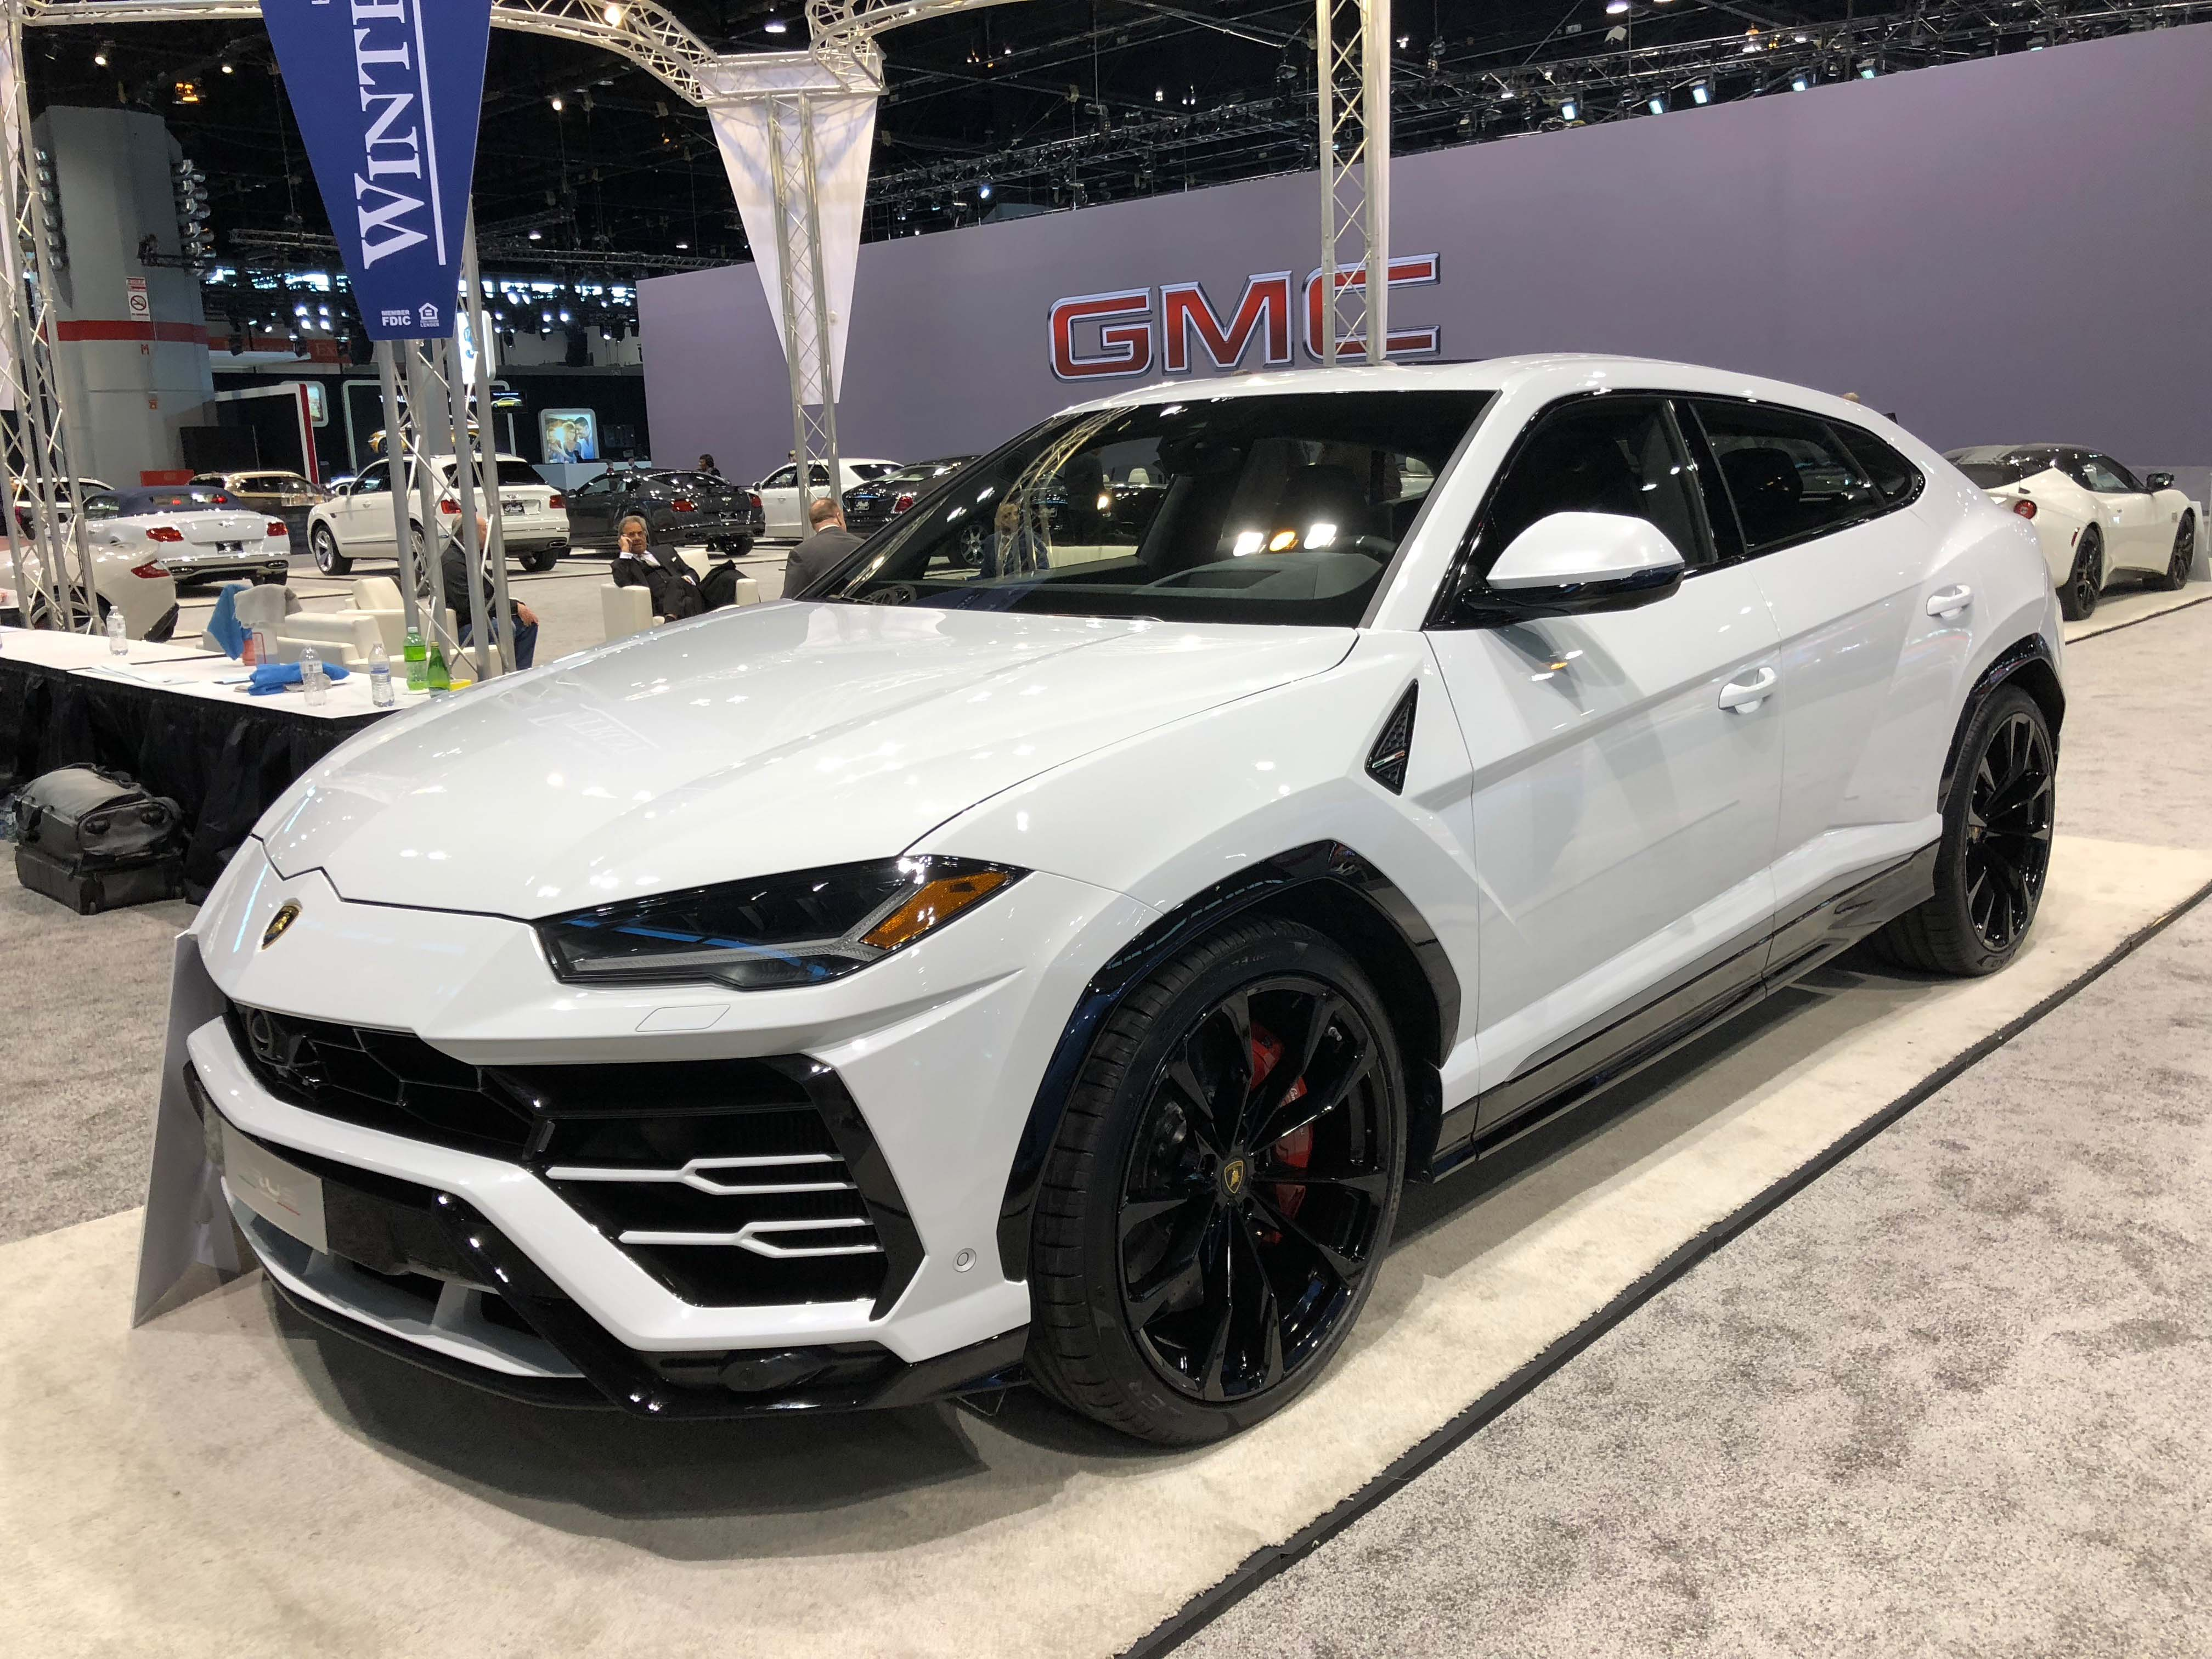 Team Automotive Rhythms And Fit Fathers Certainly Had A Great Time At The 2018 Chicago Auto Show We Hope You Do Same During Consumer Days